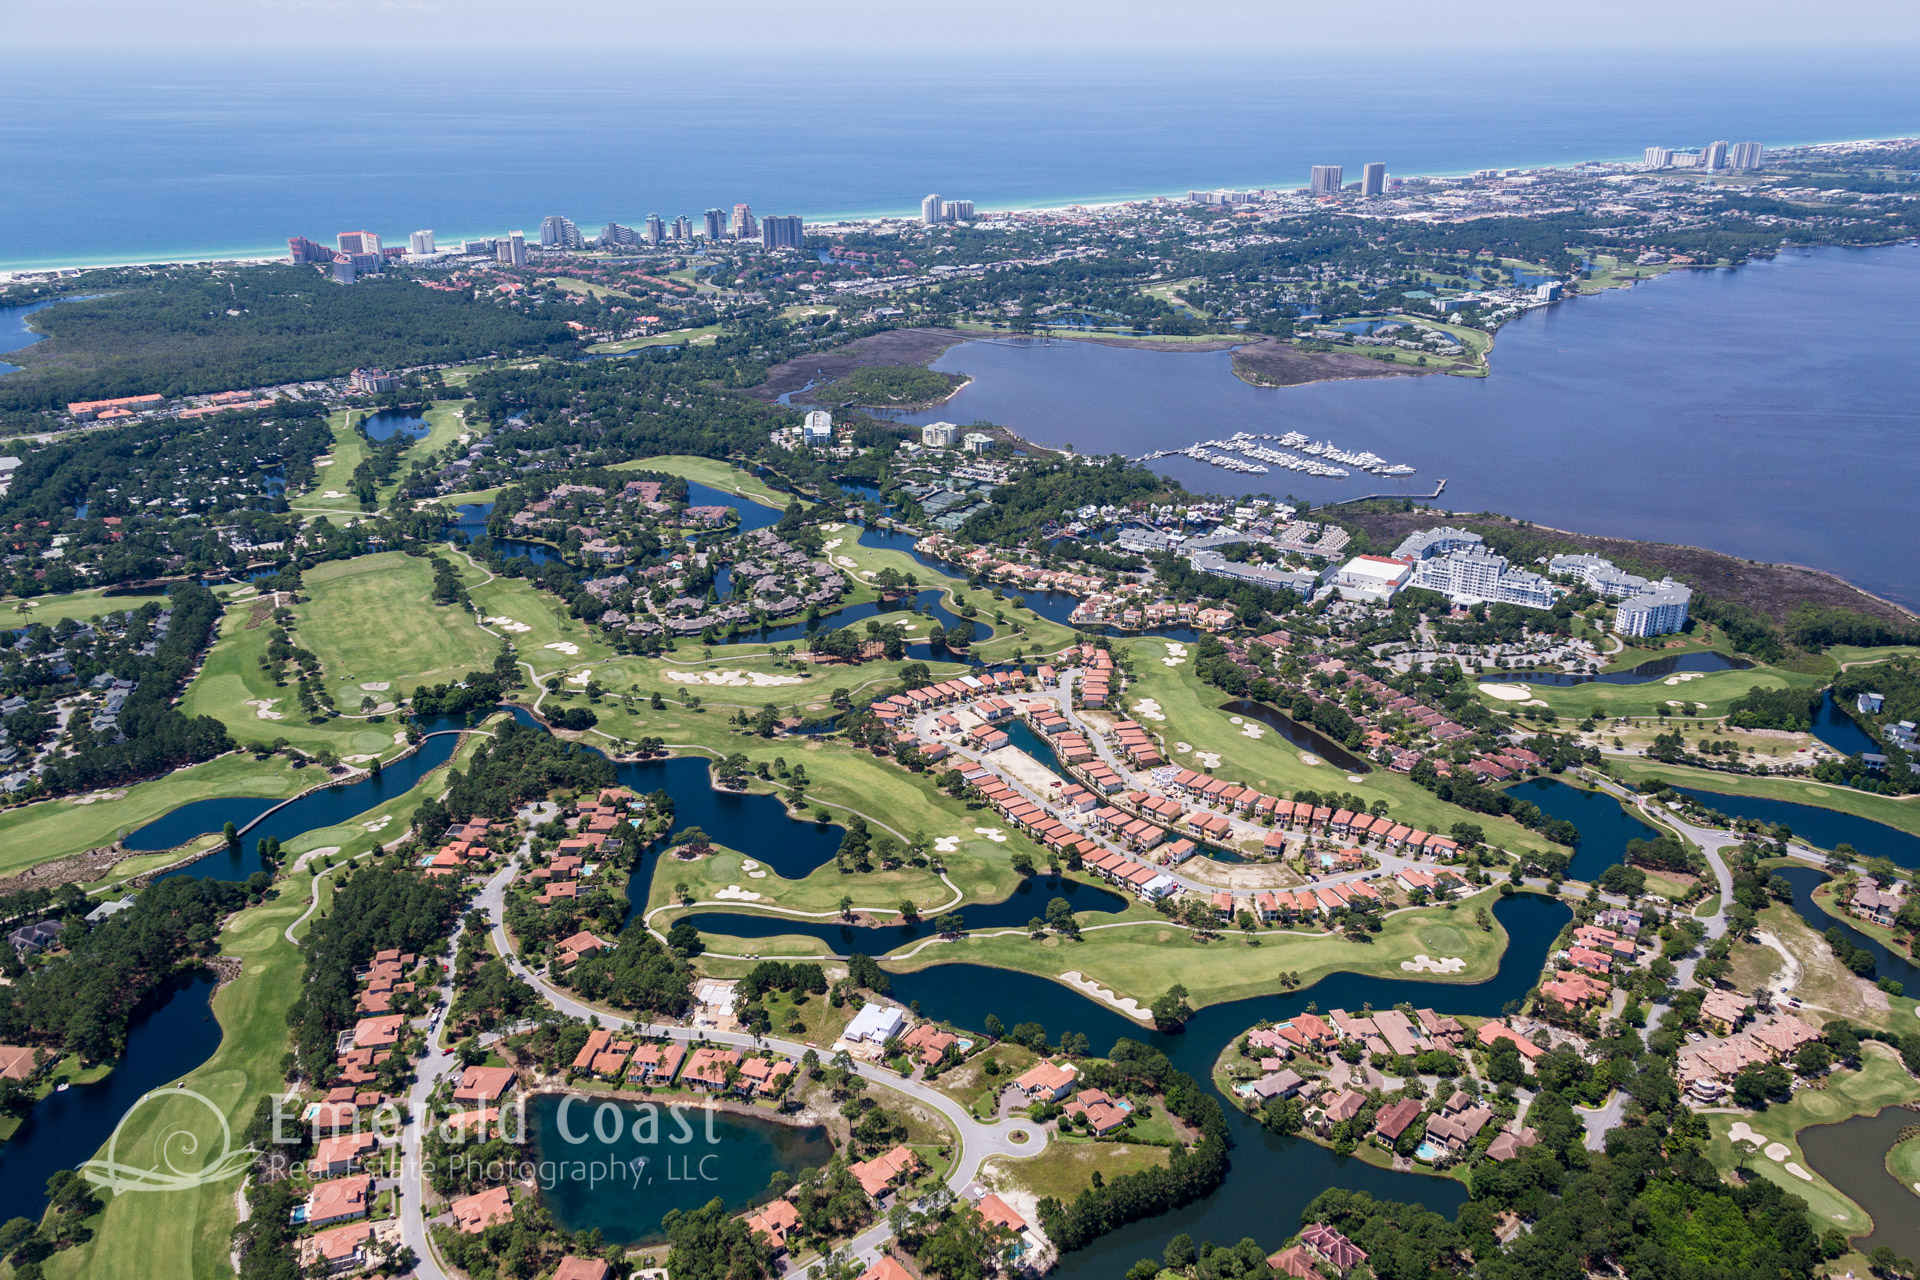 aerial view of the golf courses at the Sandestin resort